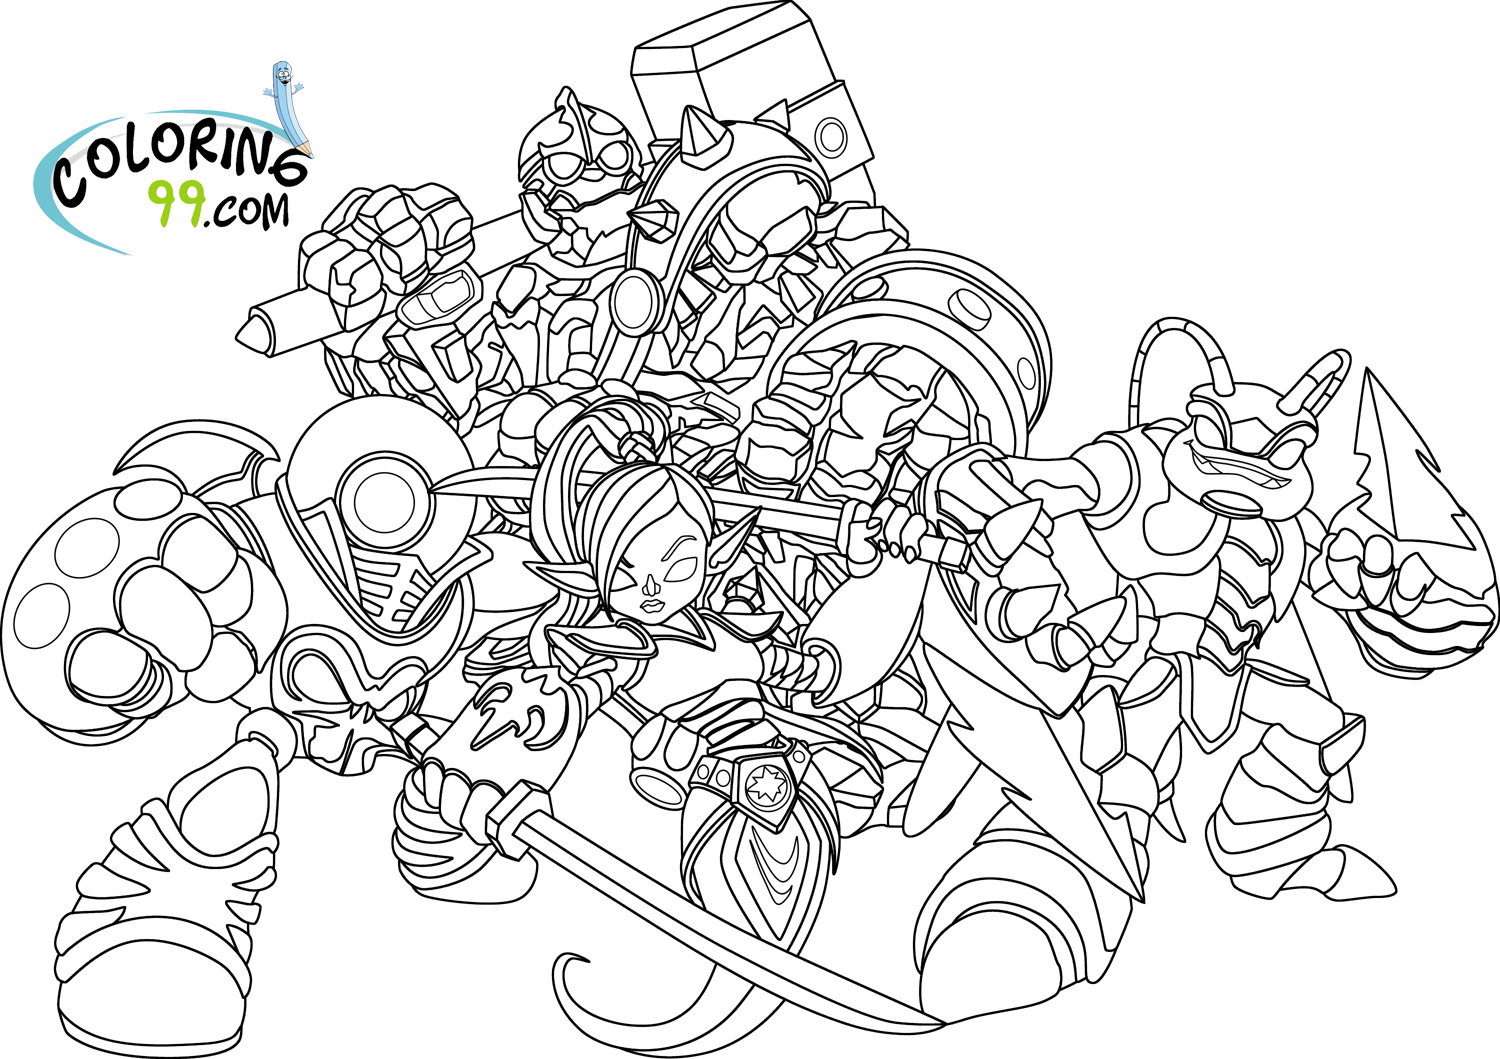 Skylanders Giants Coloring Pages | Team colors